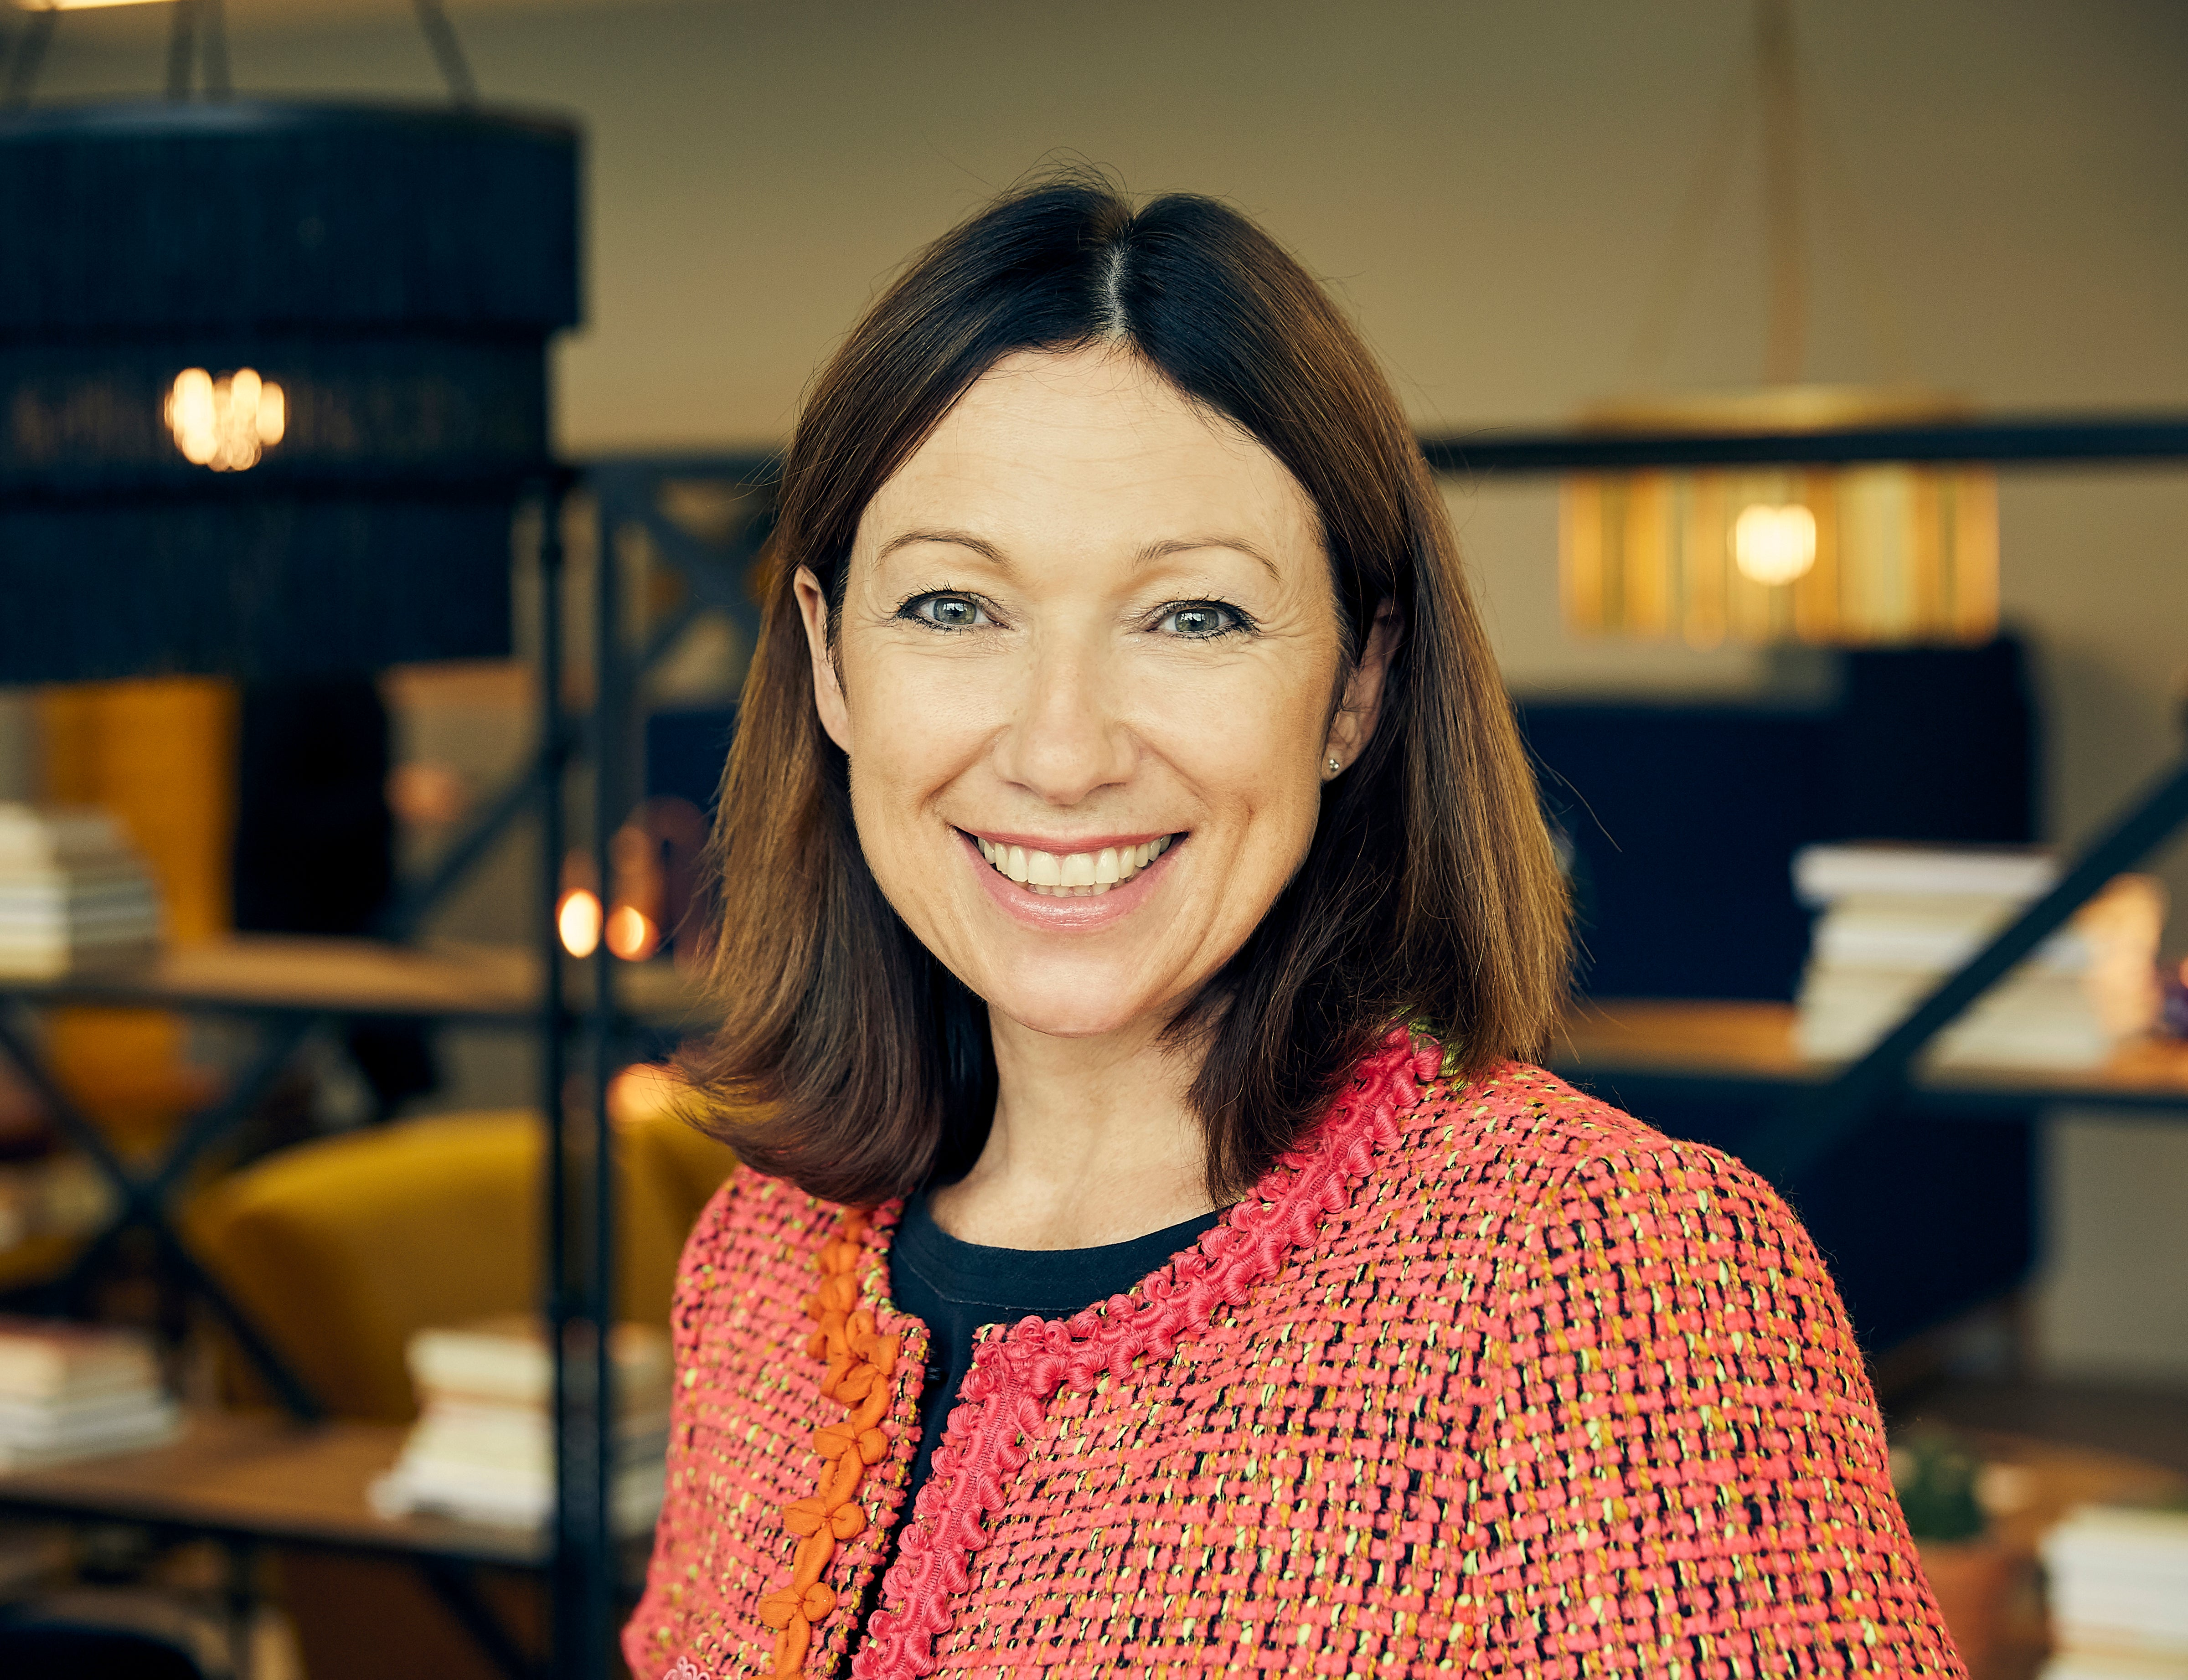 Kate Howe, Chief Growth Officer, Dentsu Aegis Network, UK and Ireland